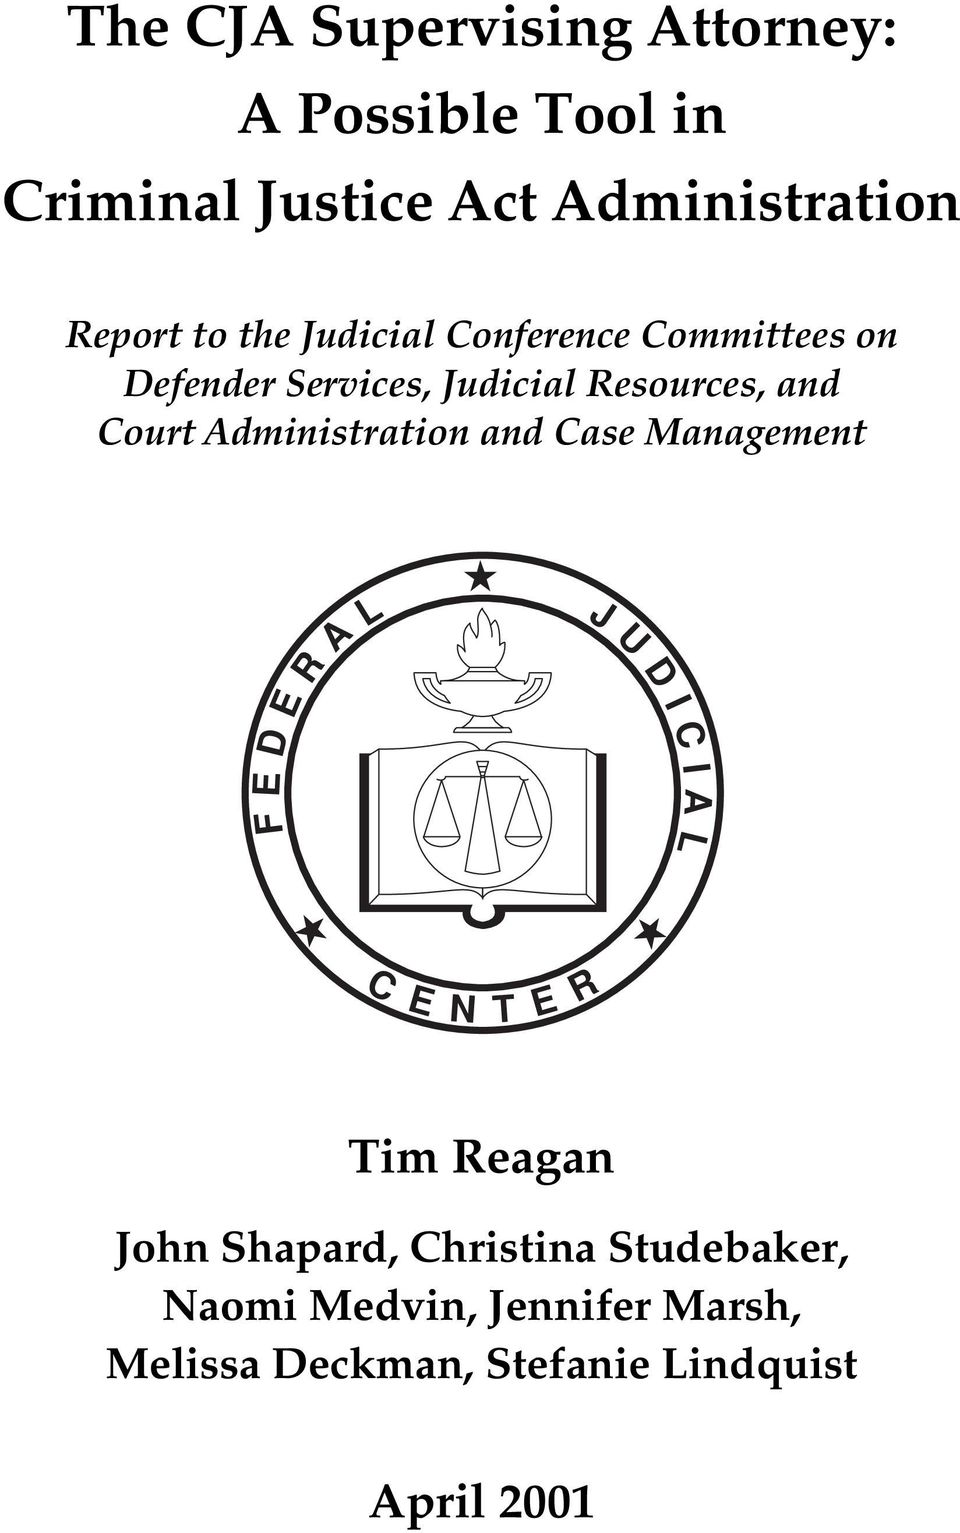 Administration and Case Management E L R A J U D I D C E I A F L C E N T E R Tim Reagan John